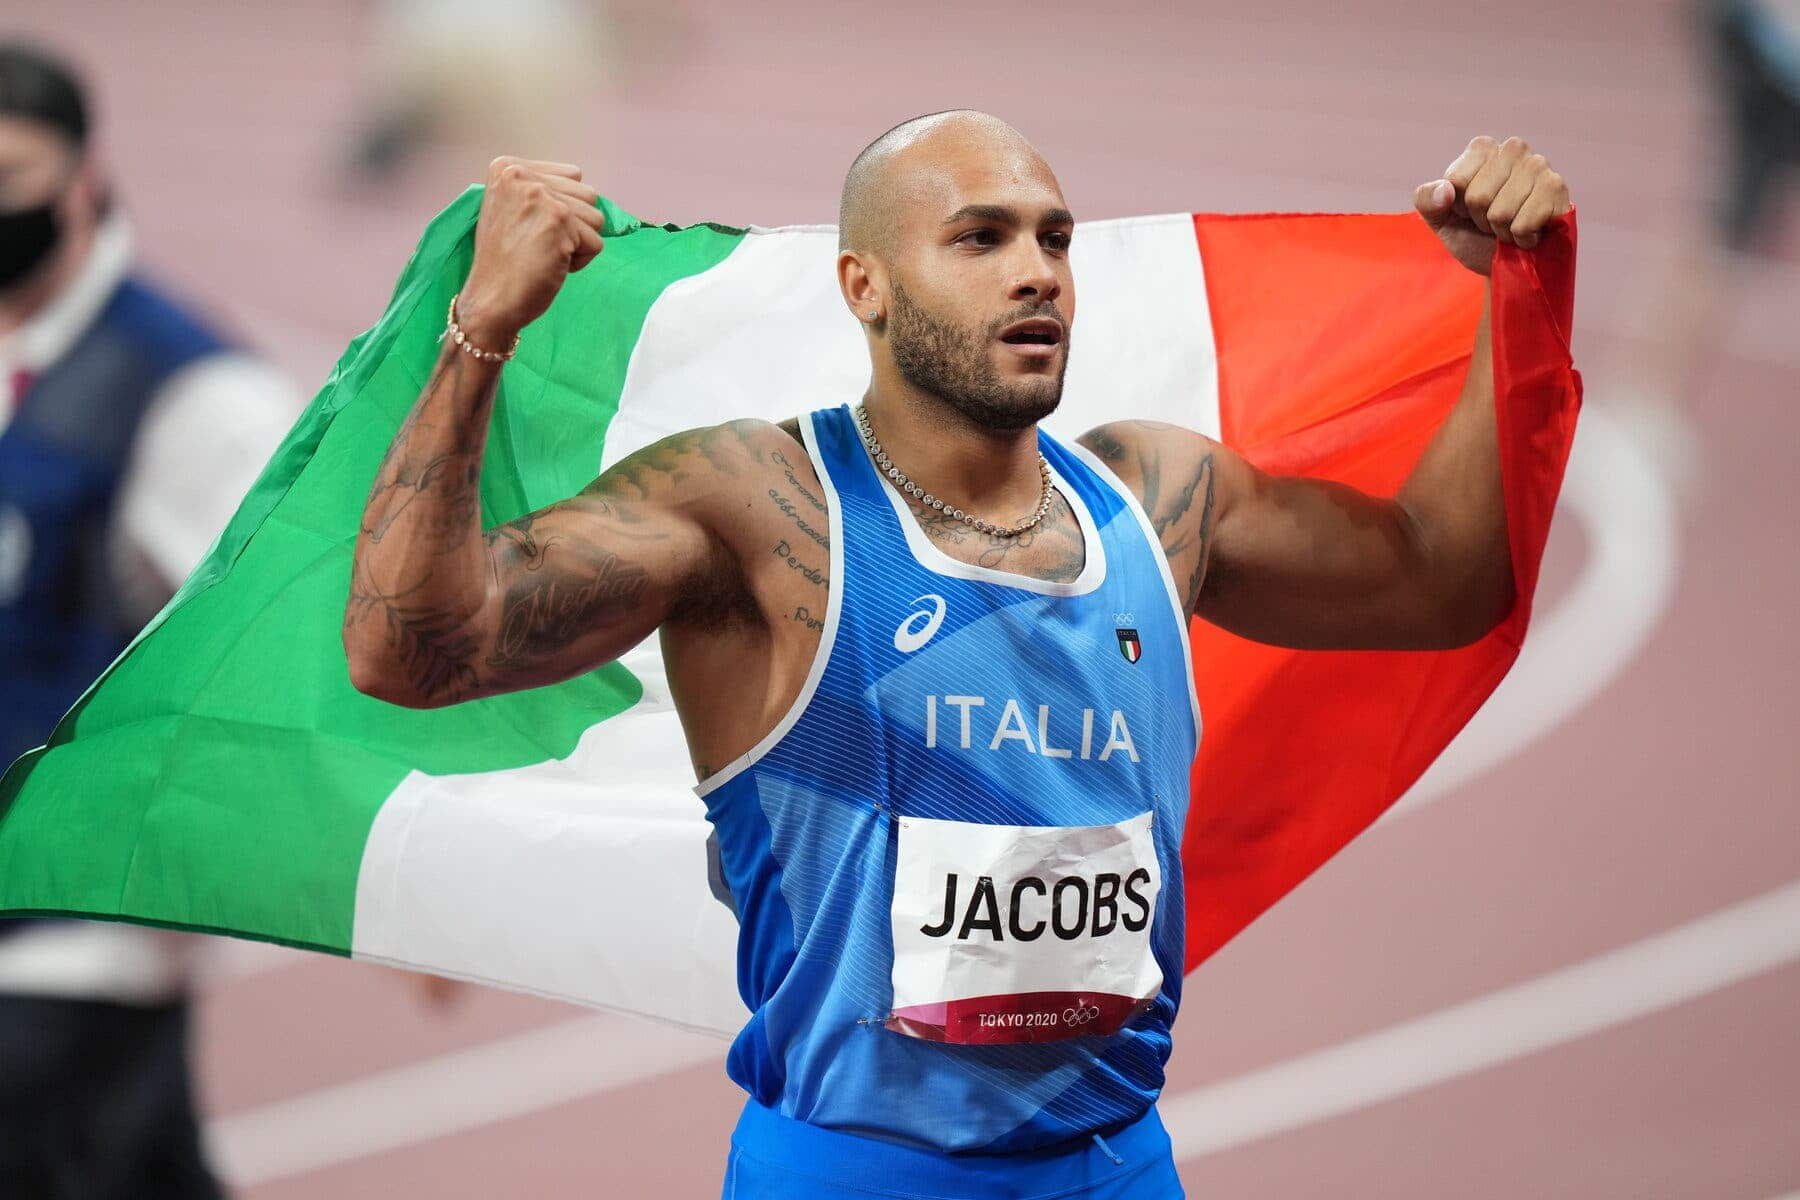 Tokyo 2020: Adegoke Suffers Injury As Italy's Jacobs Claims Shock Men's 100m Final Gold